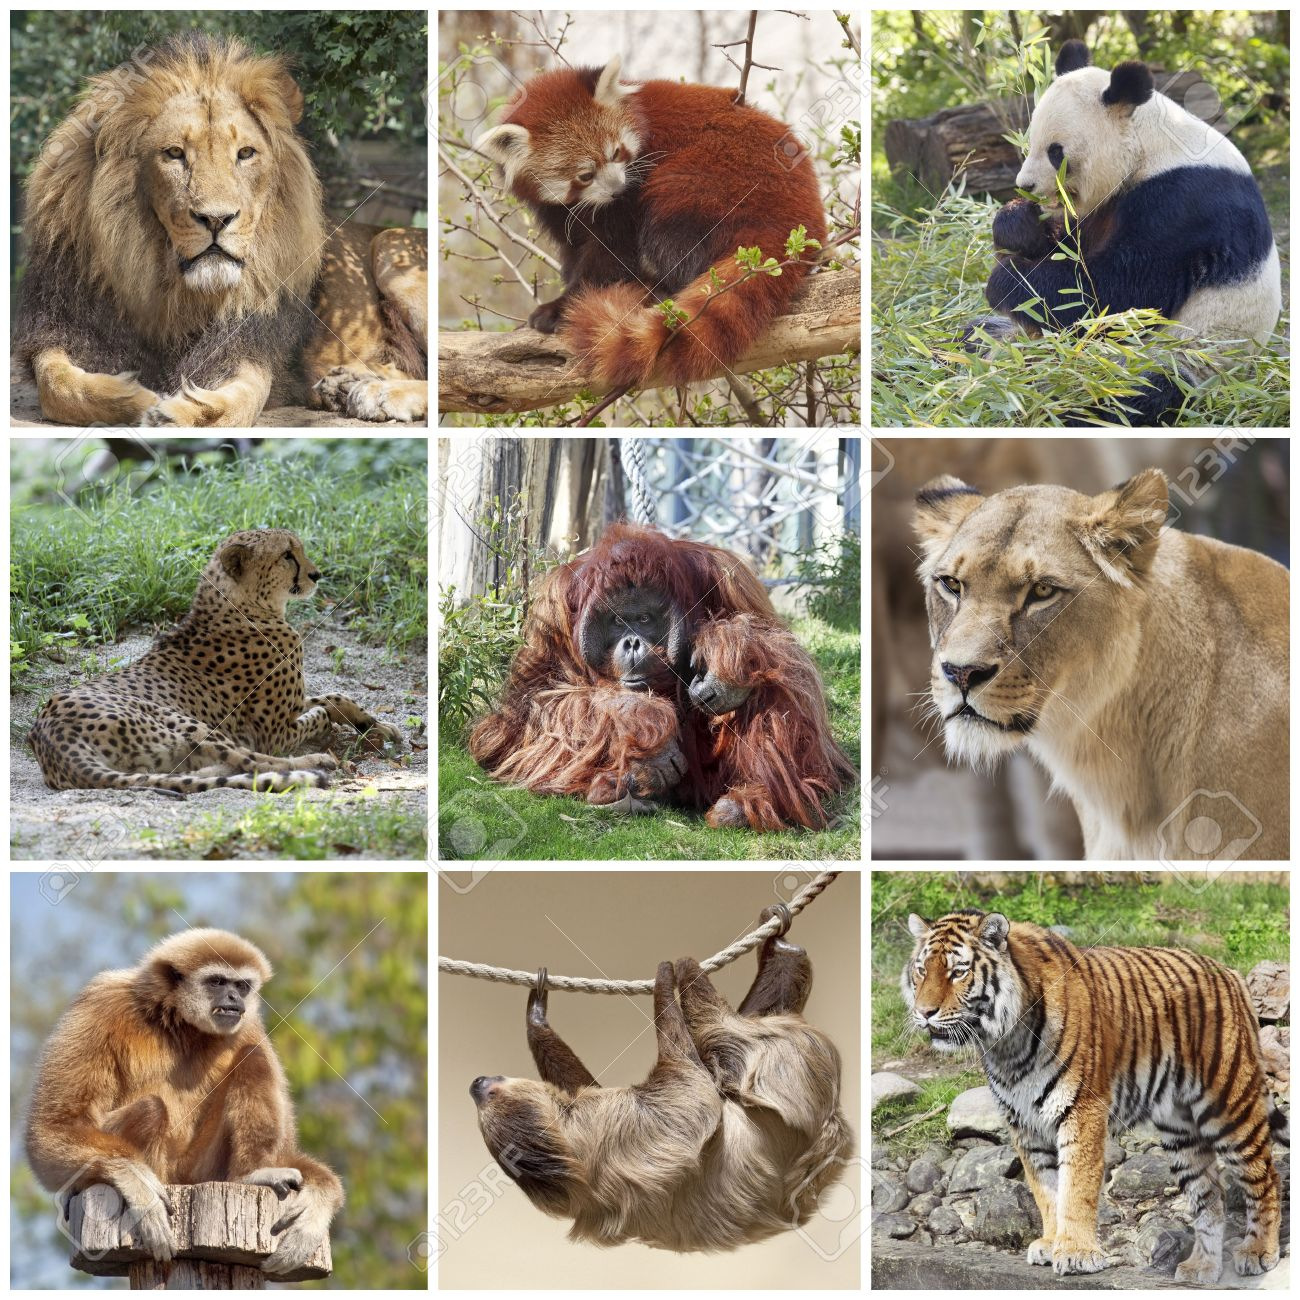 animals collage with lion, red panda, panda, cheetah, tiger,.. stock